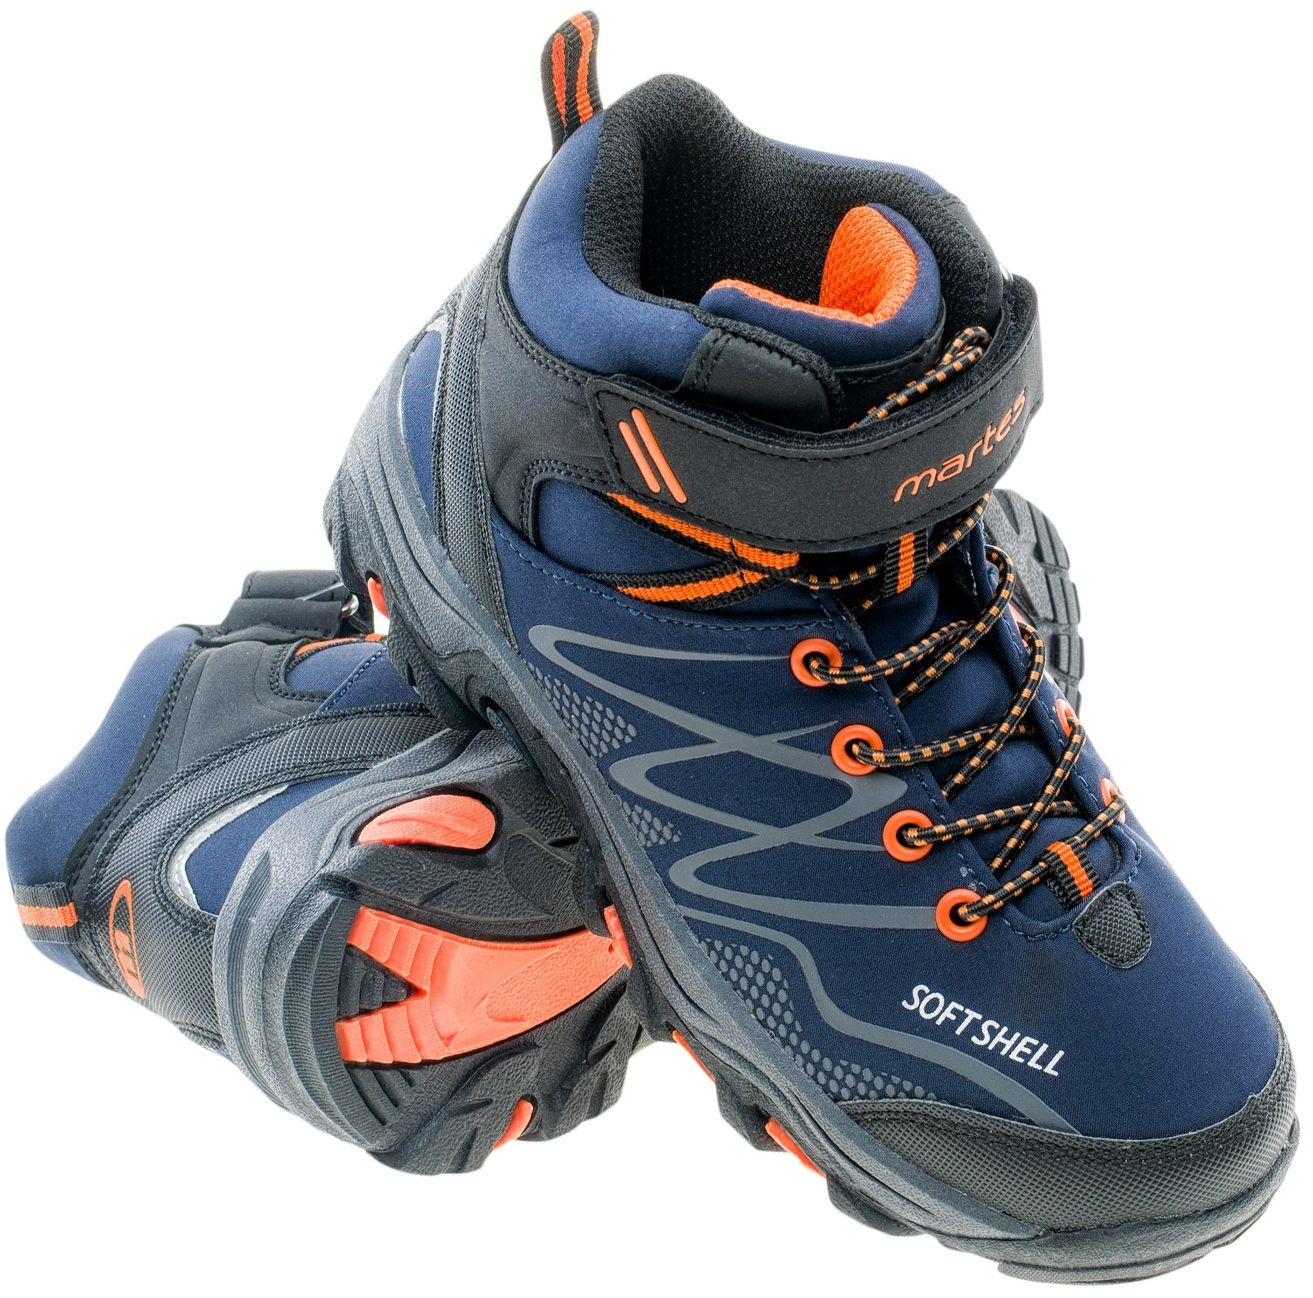 Martes Buty juniorskie RONN MID JR navy/orange/dark grey r. 35 5902786077069